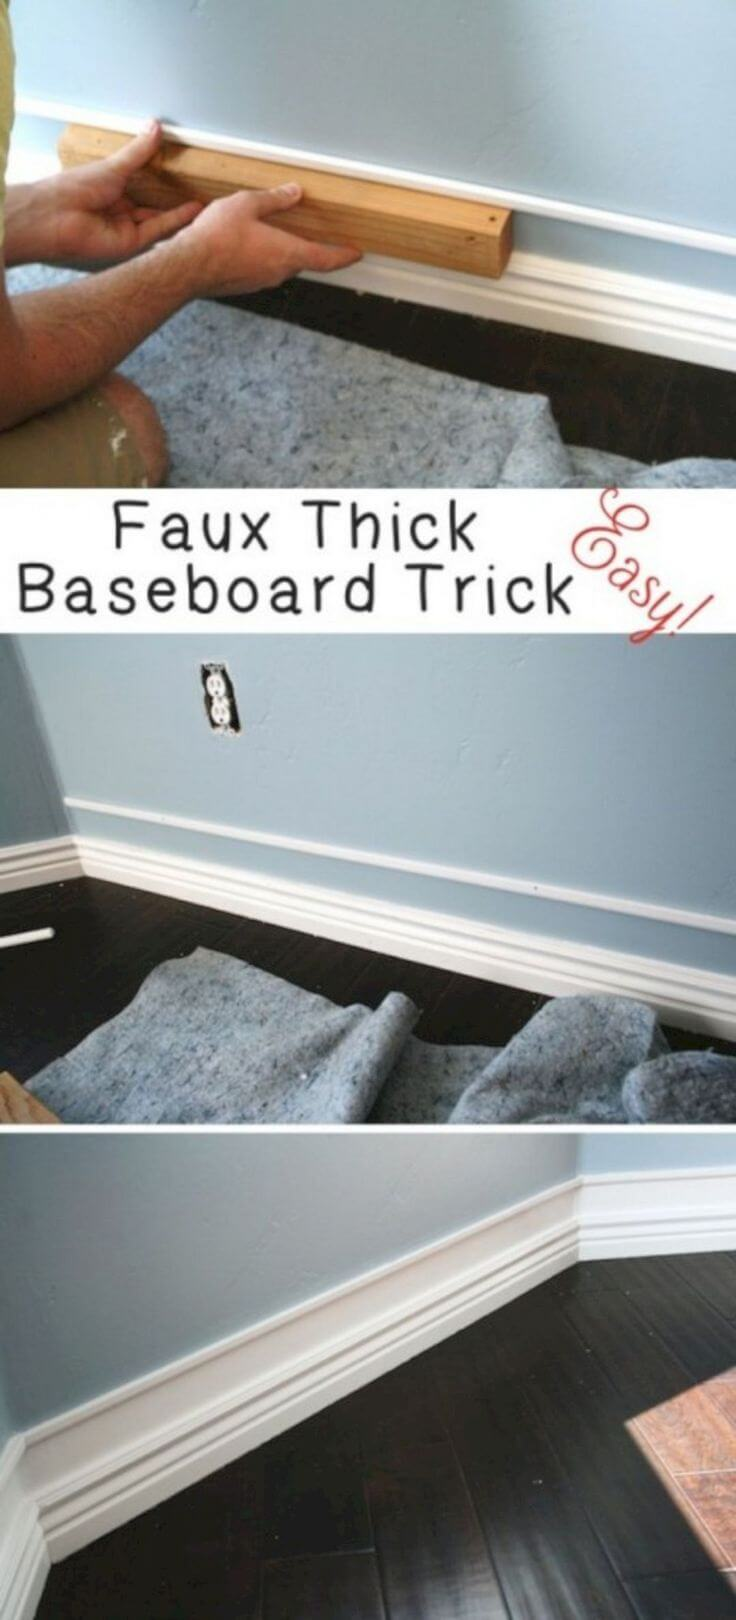 Easily Double Up Your Baseboard Trim